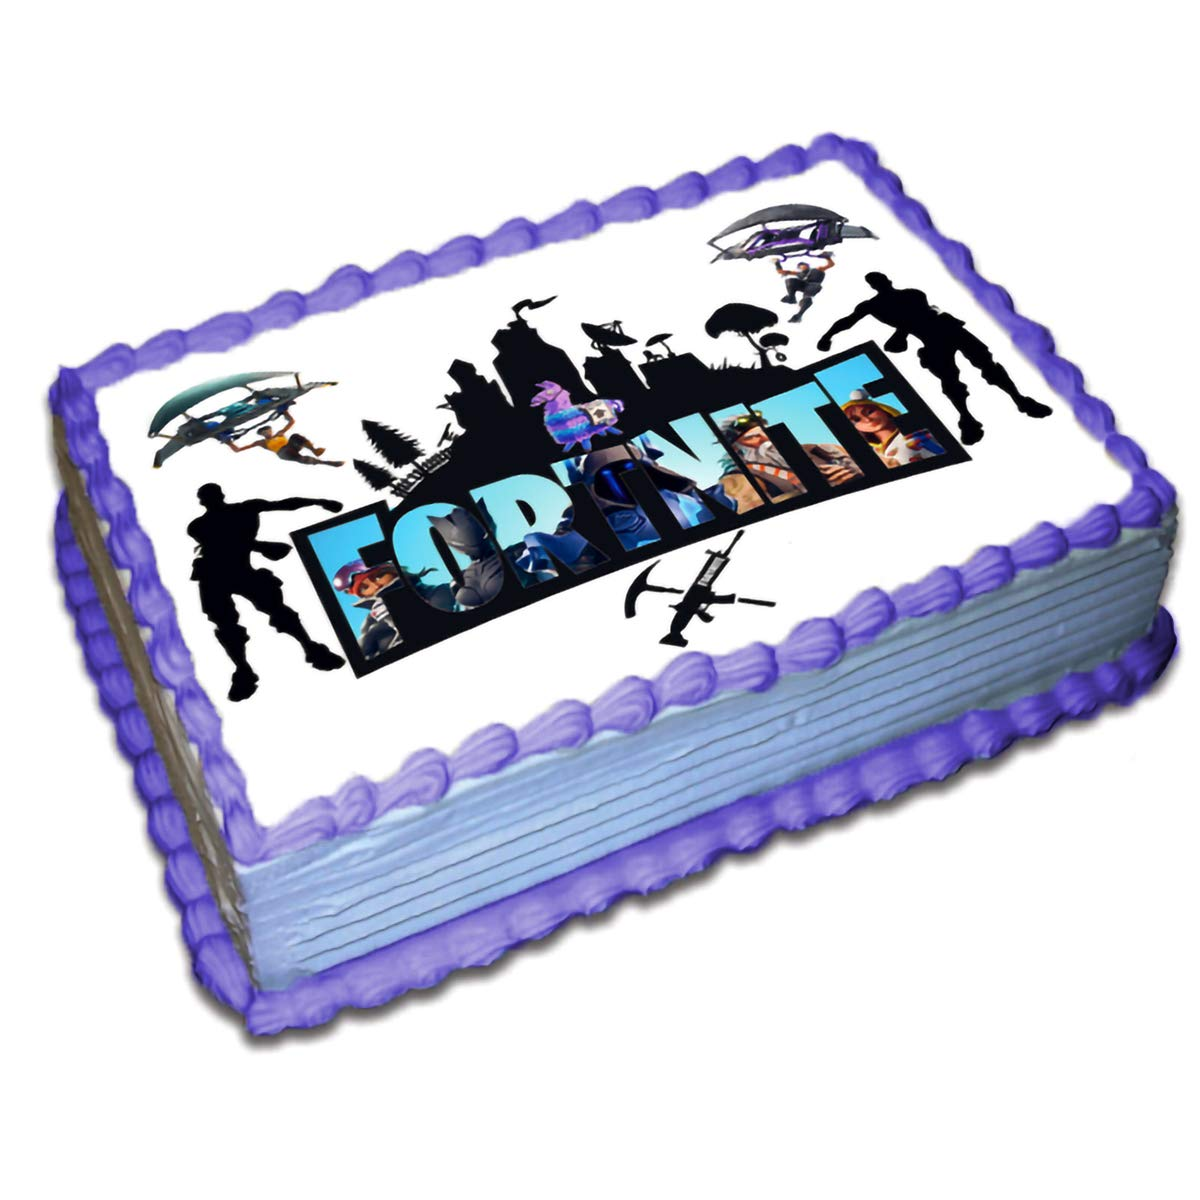 Battle Royale Cake Topper 1 4 8 5 X 11 5 Inches Birthday Cake Topper Amazon Com Grocery Gourmet Food Skip to main search results. battle royale cake topper 1 4 8 5 x 11 5 inches birthday cake topper